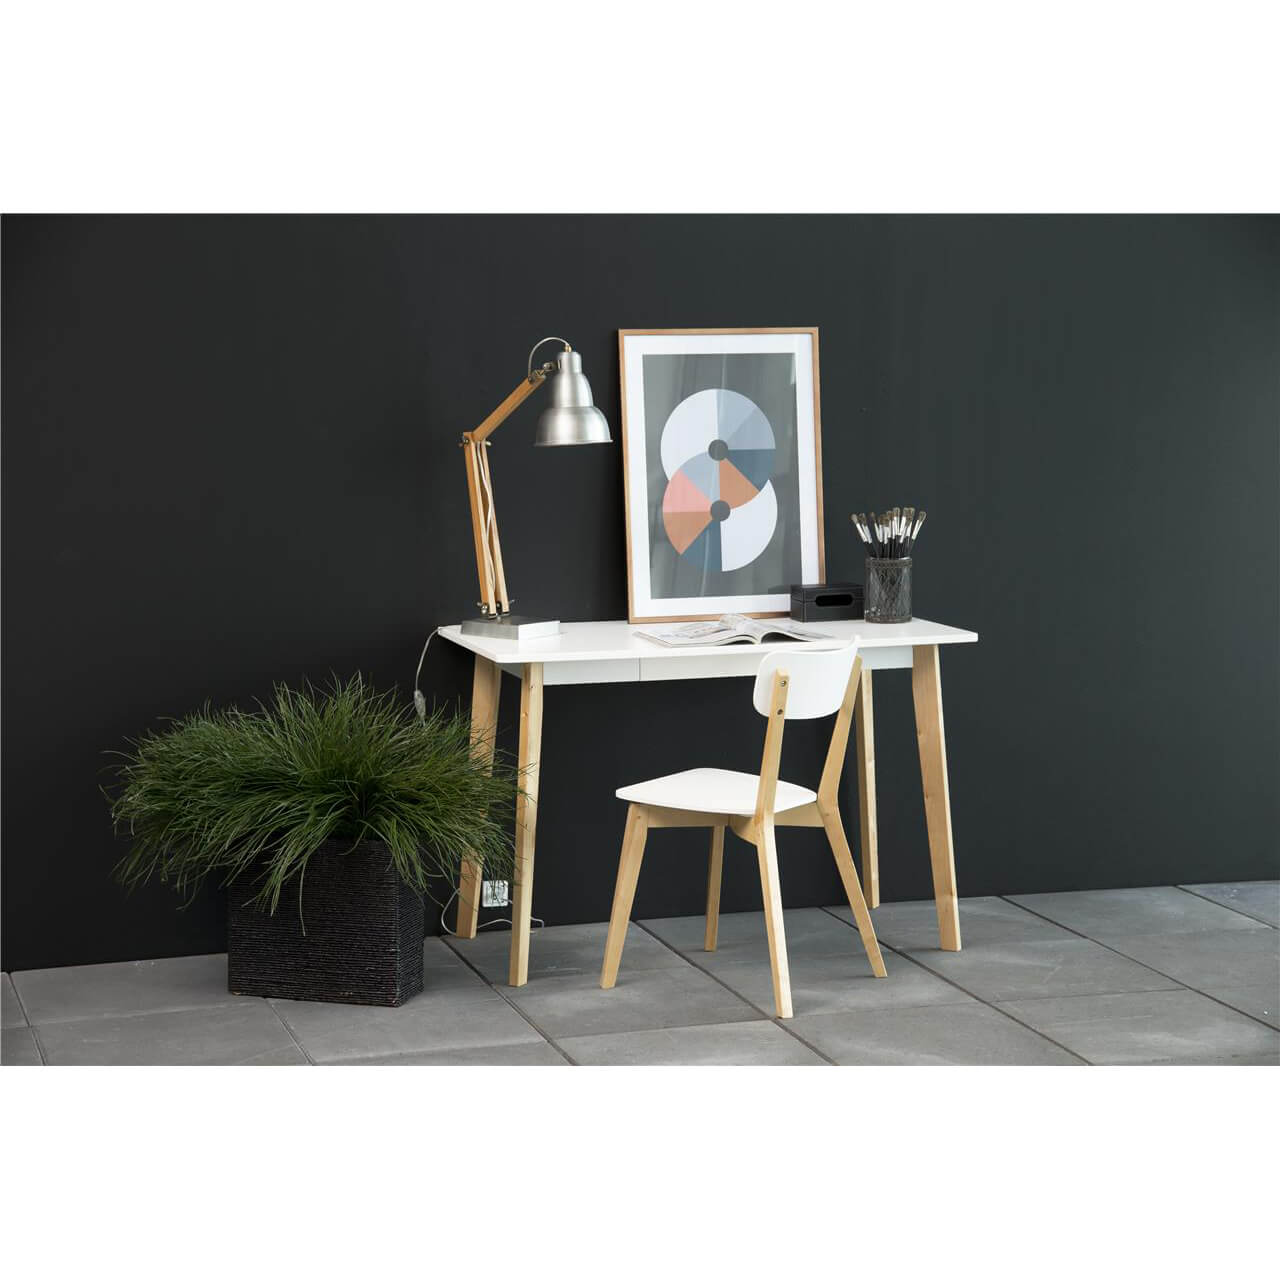 Scandi Style Raven Scandi Style Desk White Wooden And Birch Home Office